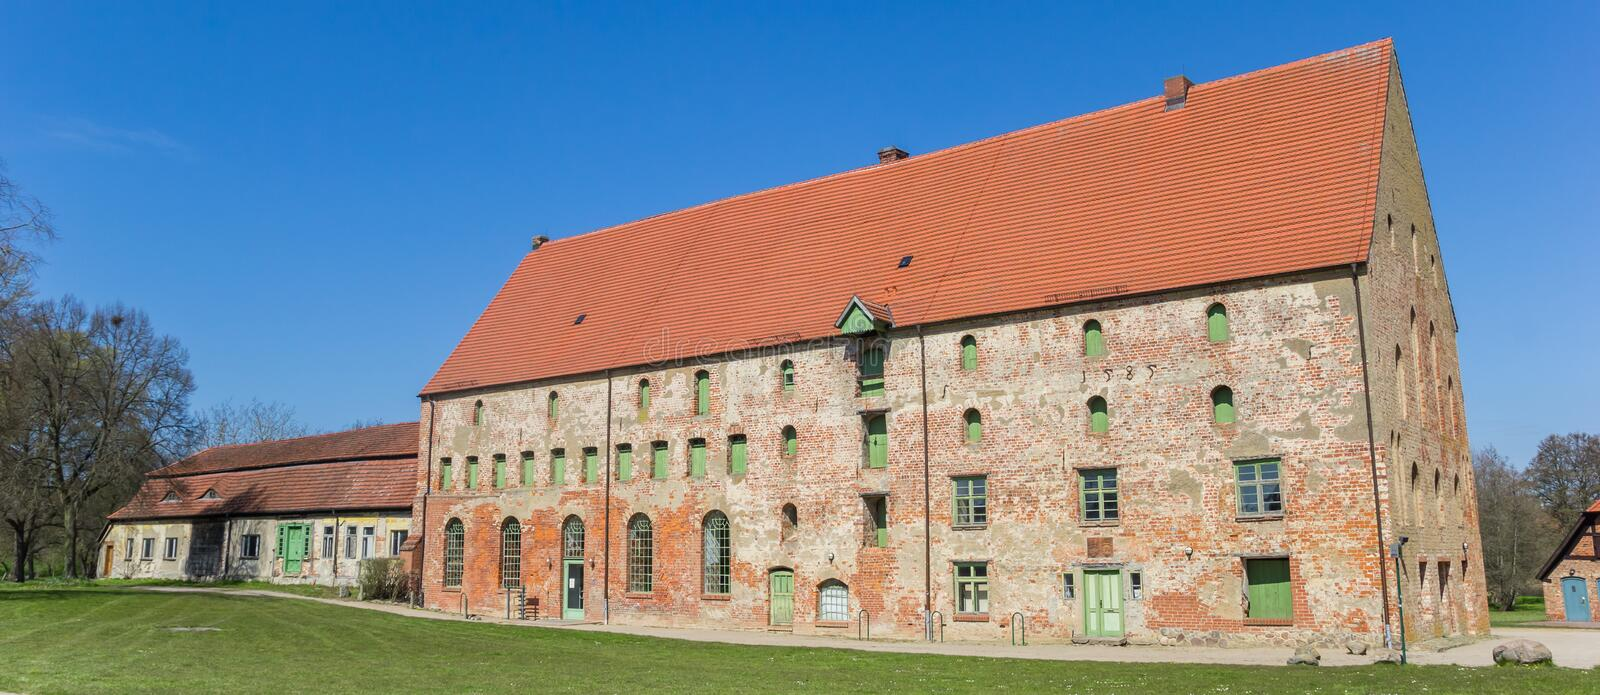 Panorama of historic buildings of the monastery in Dargun. Germany royalty free stock image